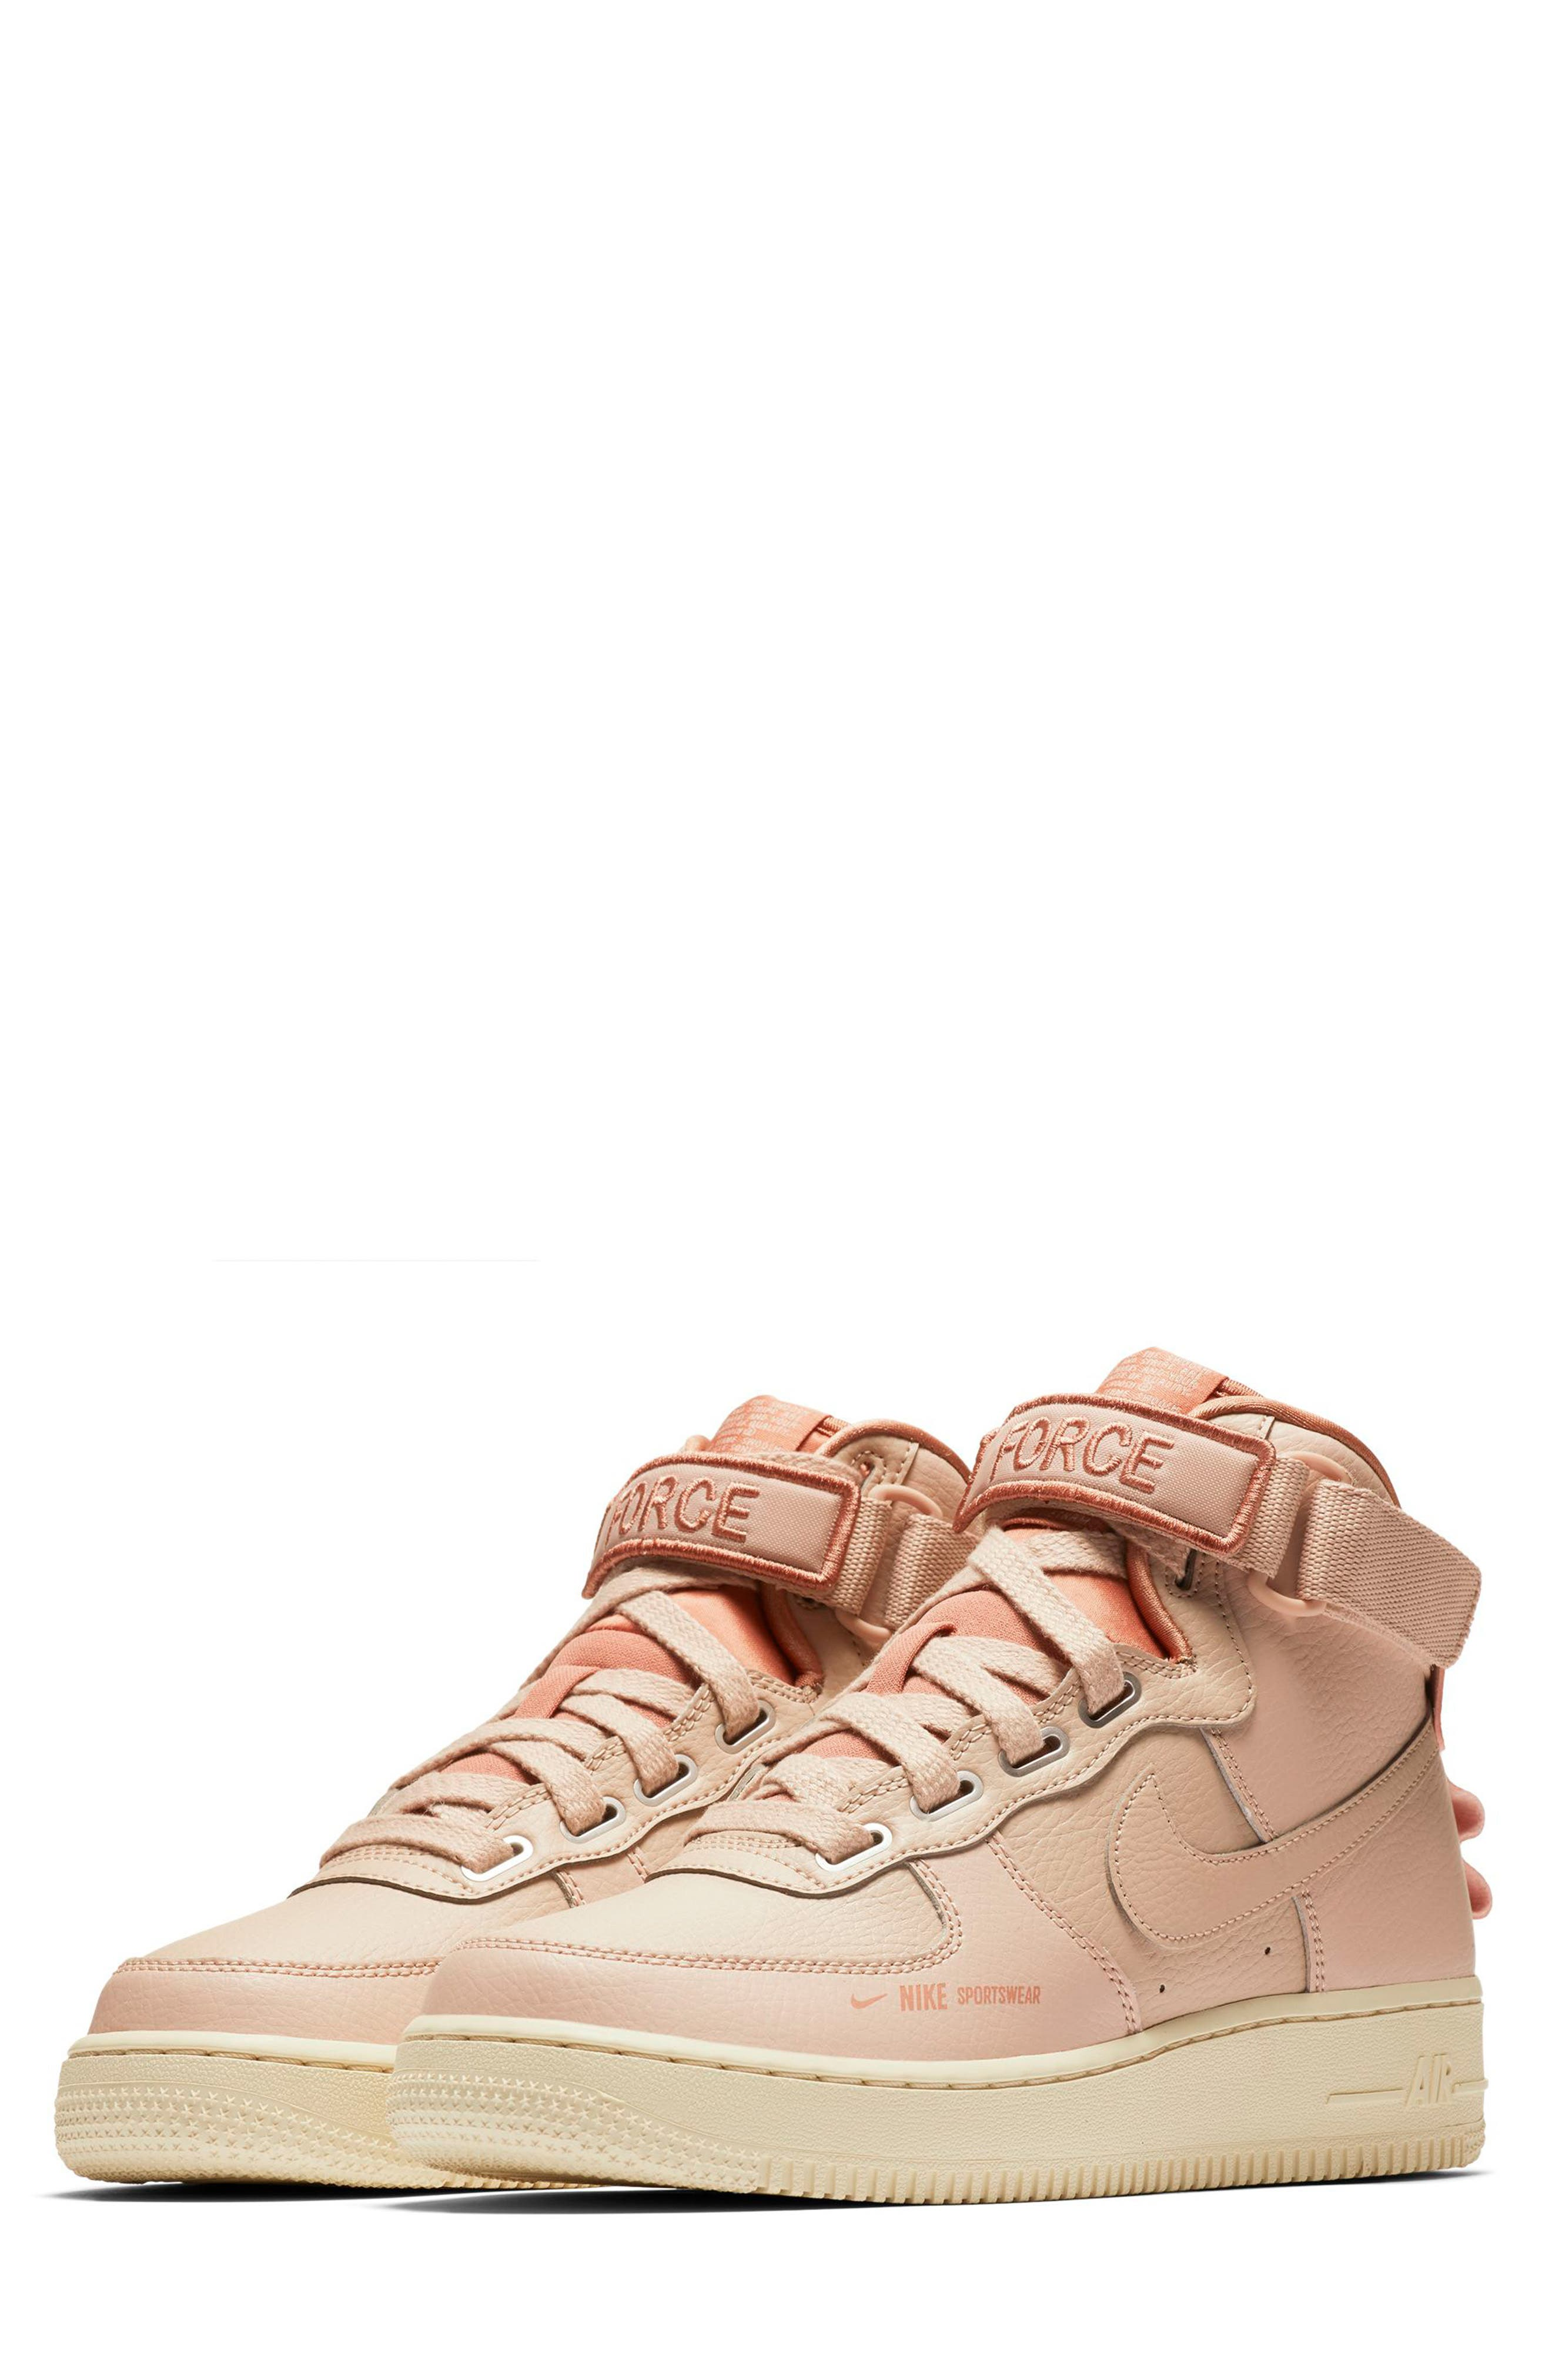 NIKE, Air Force 1 High Utility Sneaker, Main thumbnail 1, color, 200